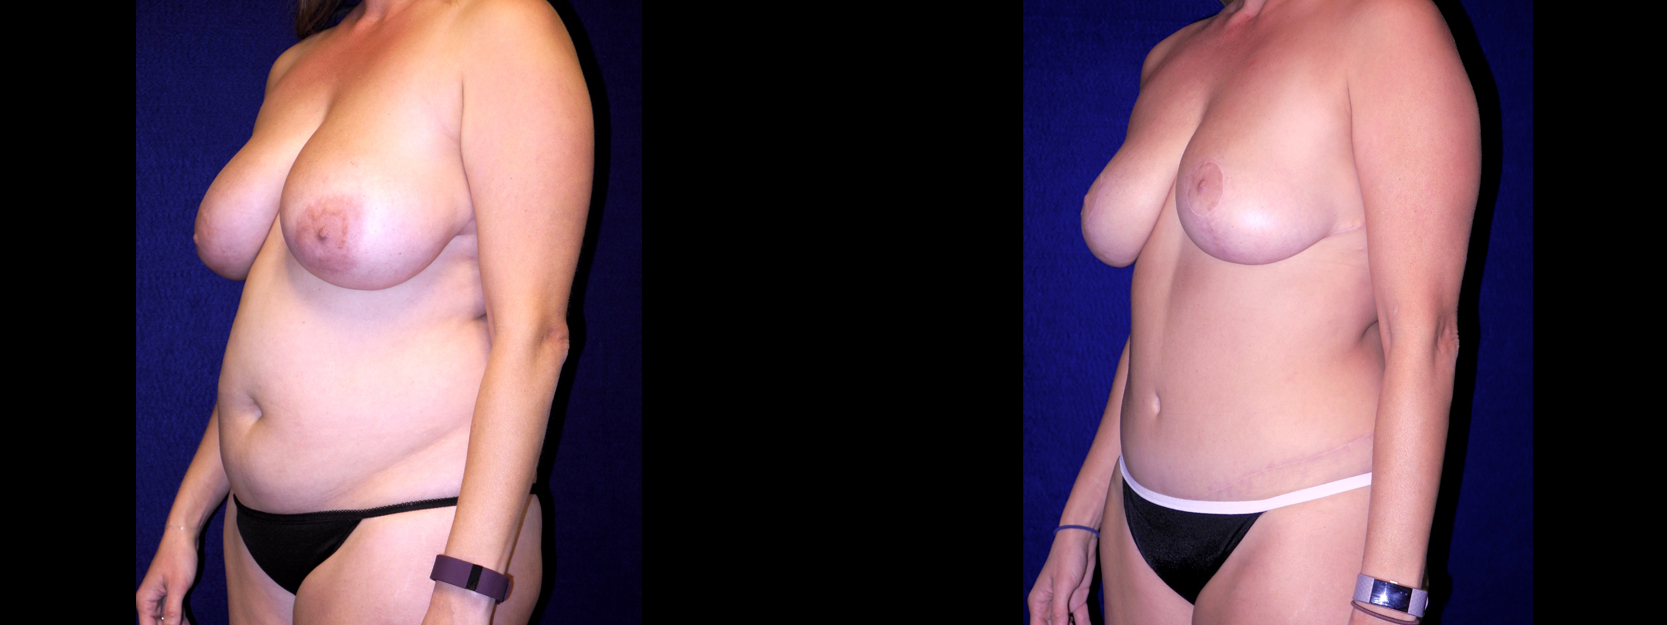 Left 3/4 View - Breast Reduction, Tummy Tuck, Liposuction